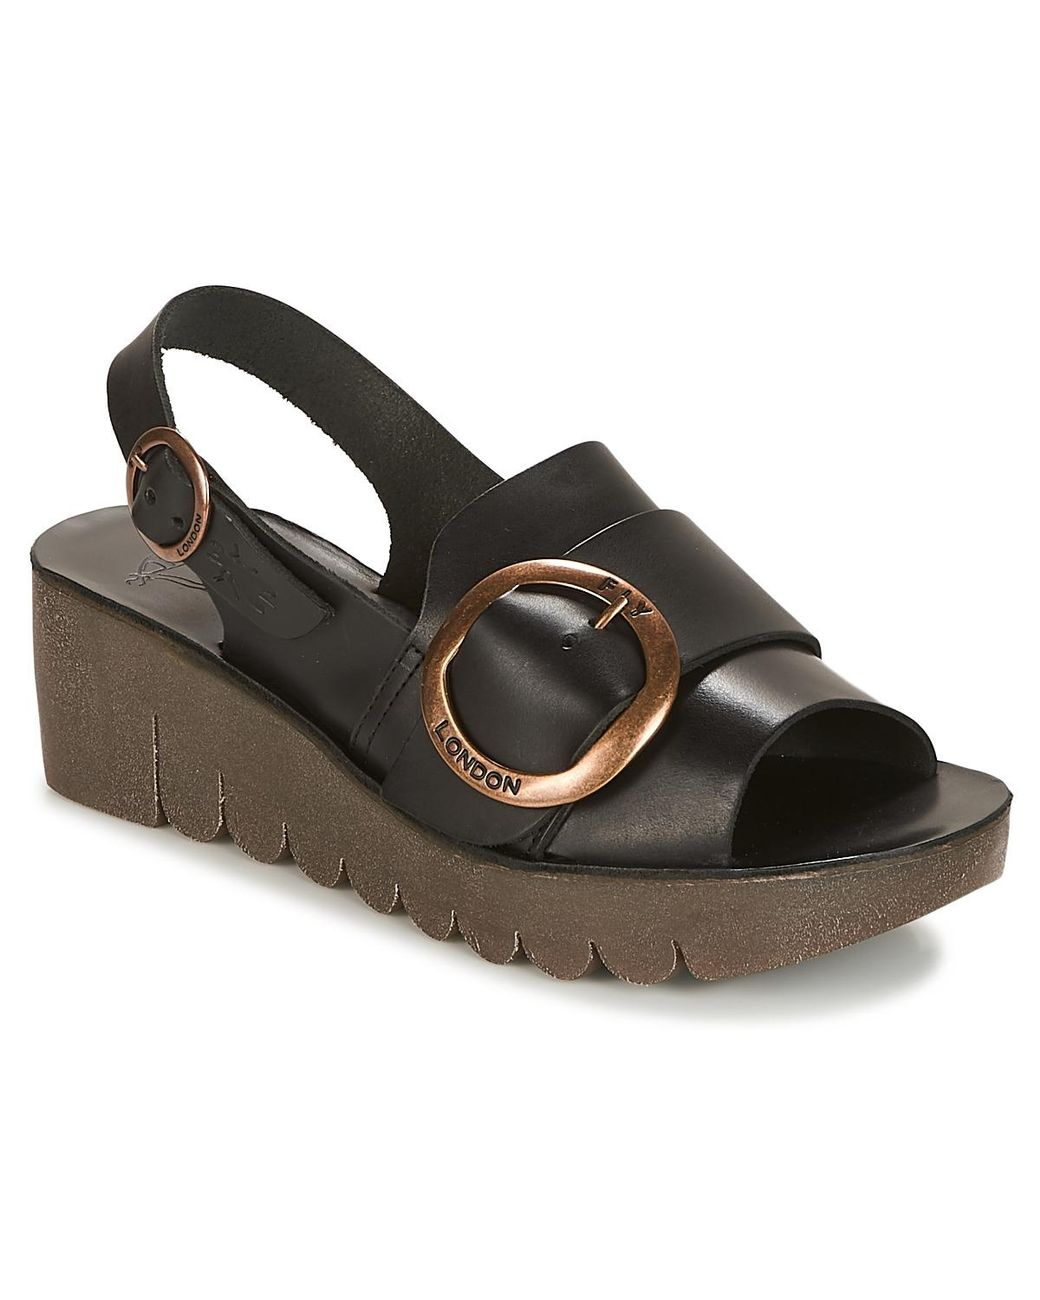 4b610d1942c8 Fly London Yidi Sandals in Black - Lyst